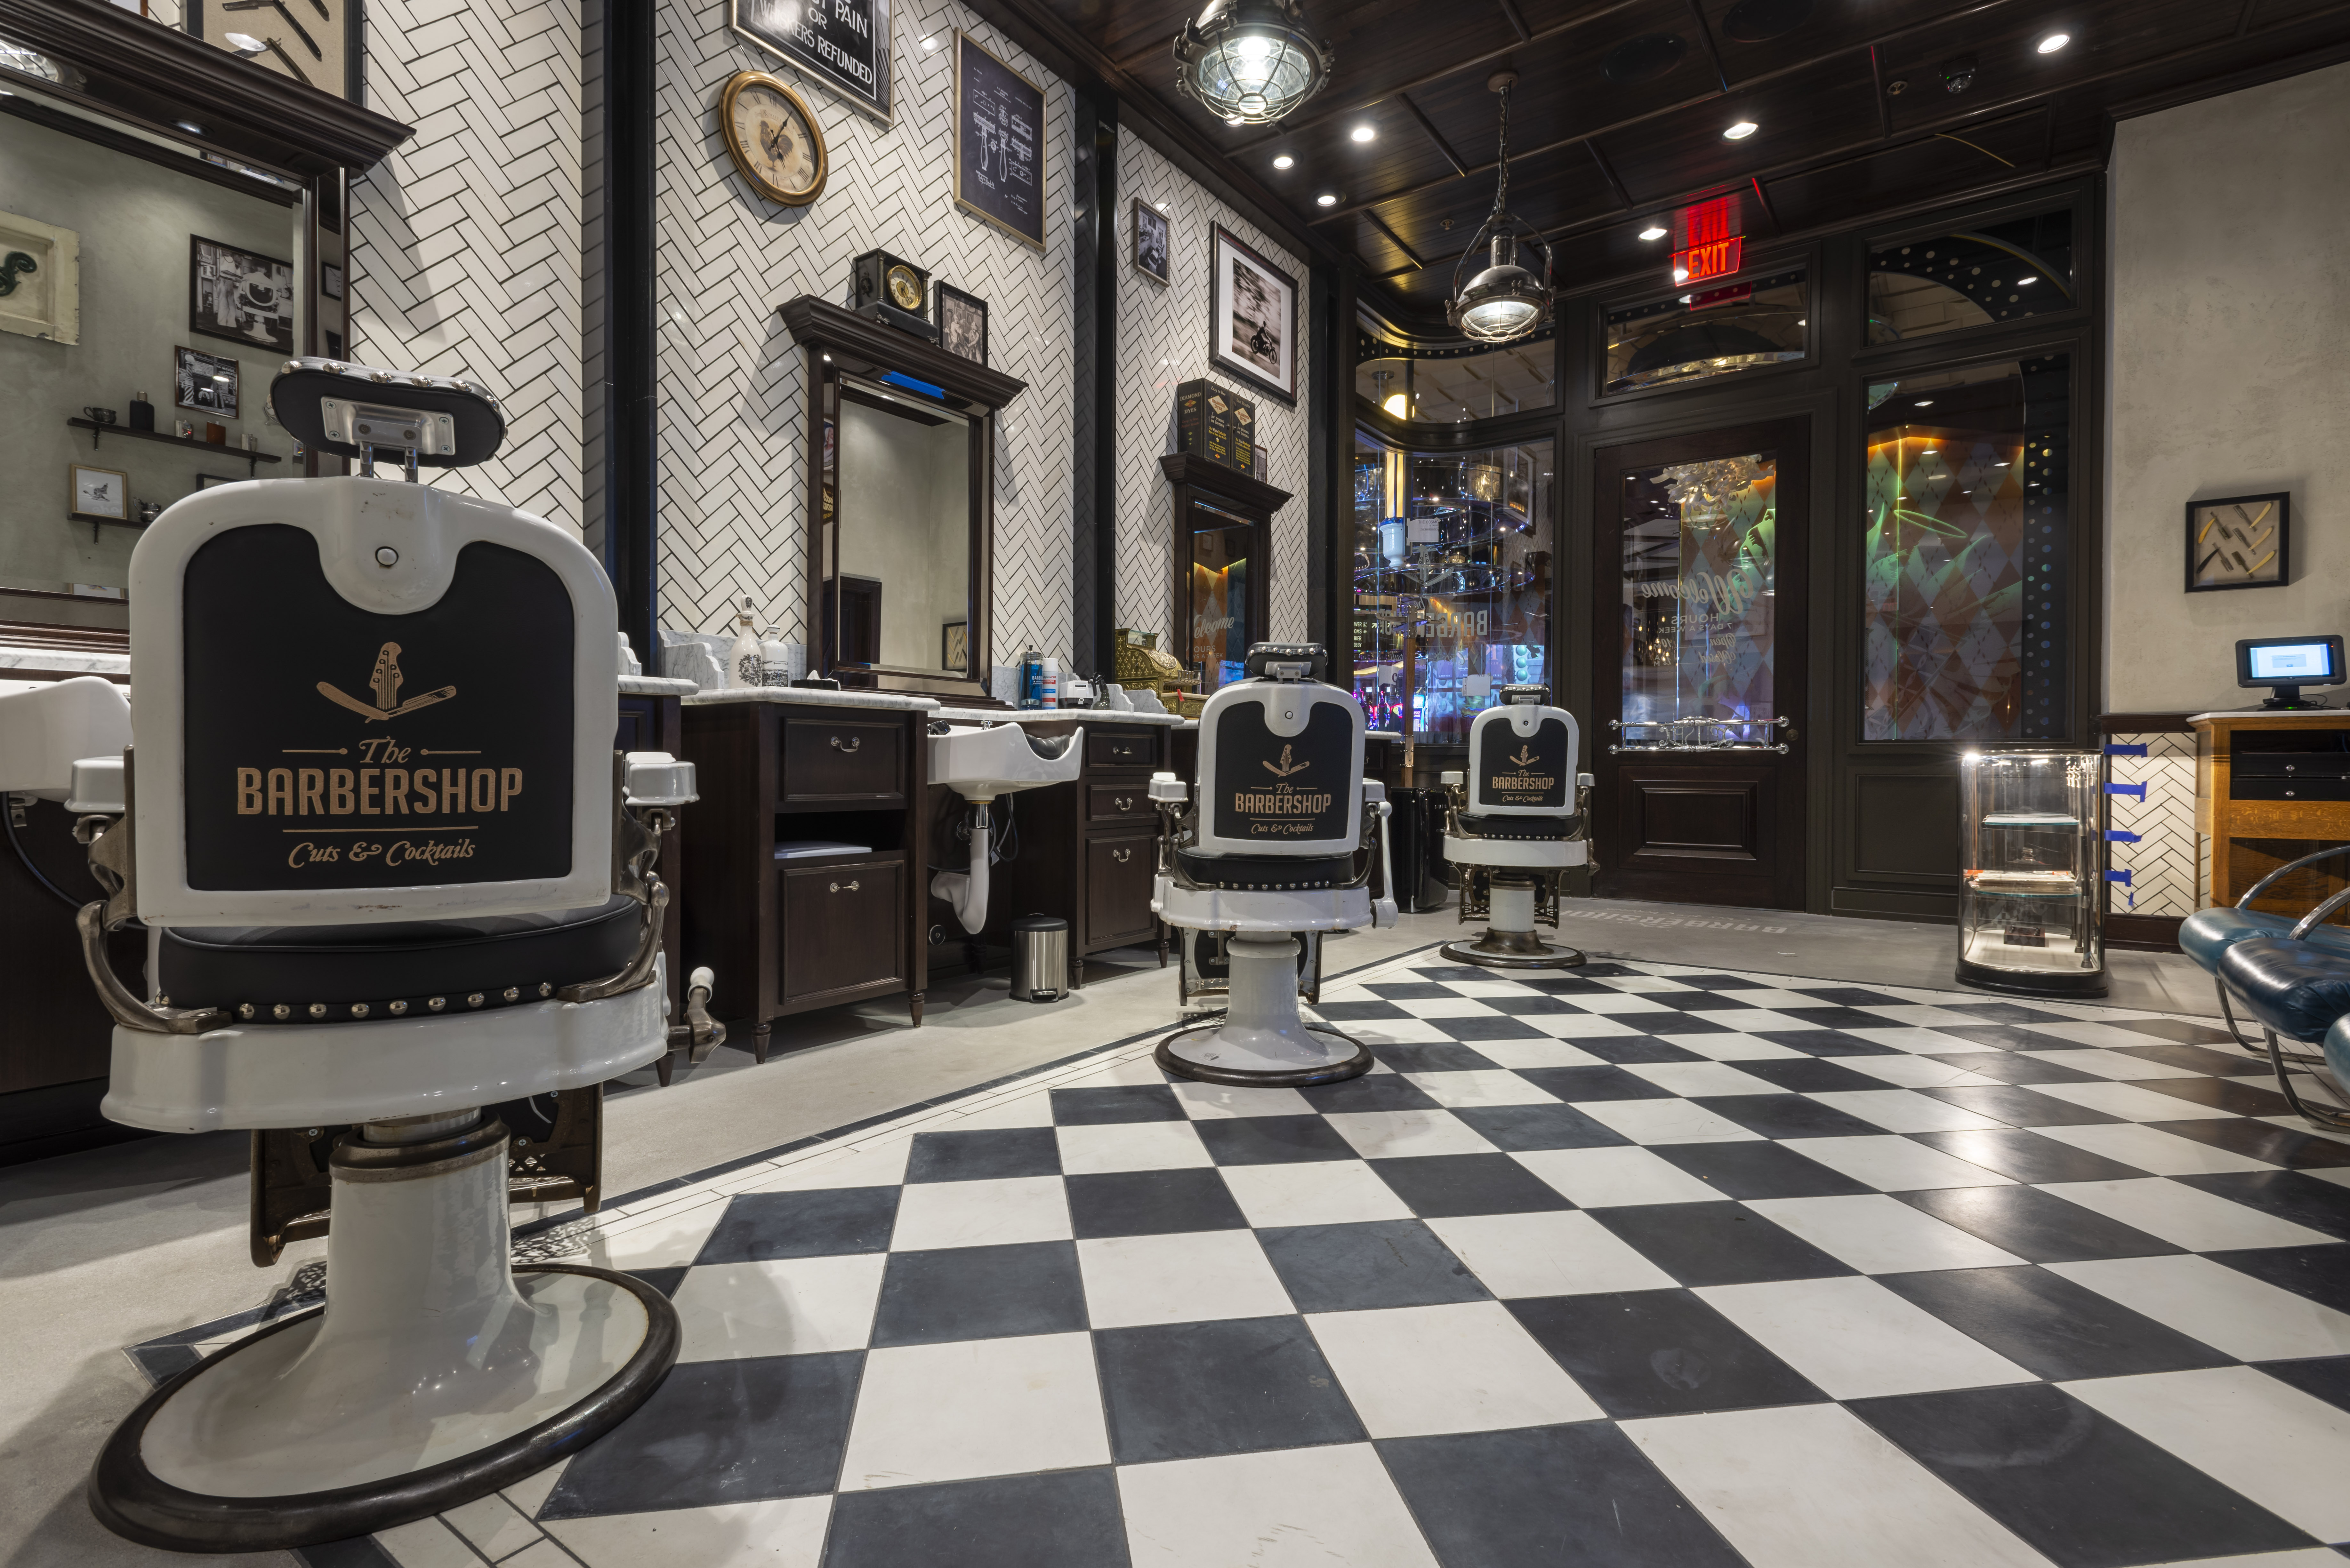 Barbershop Cuts and Cocktails